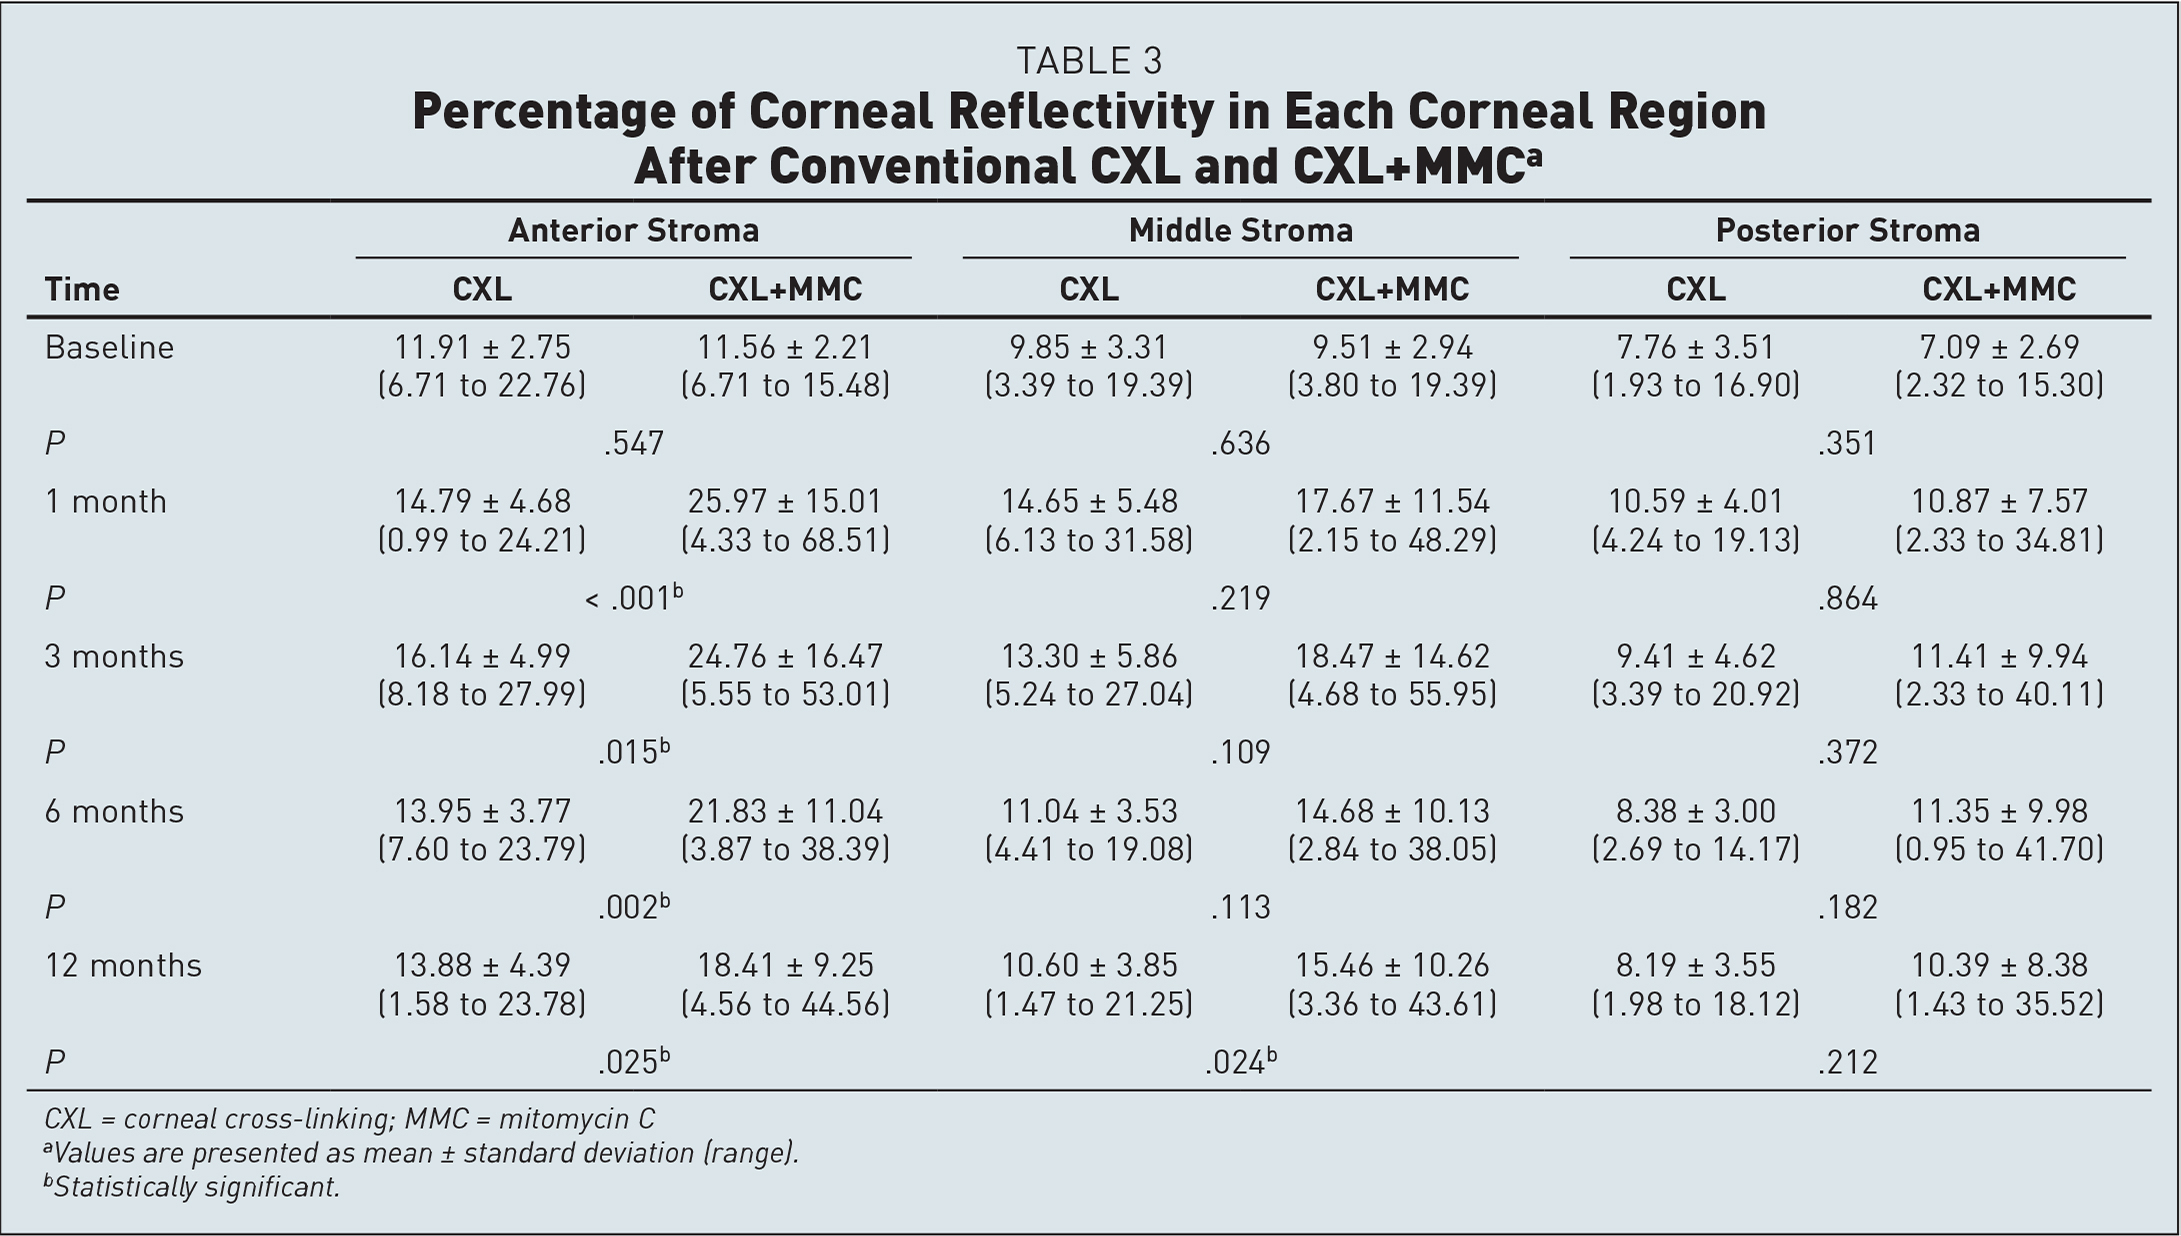 Percentage of Corneal Reflectivity in Each Corneal Region After Conventional CXL and CXL+MMCa